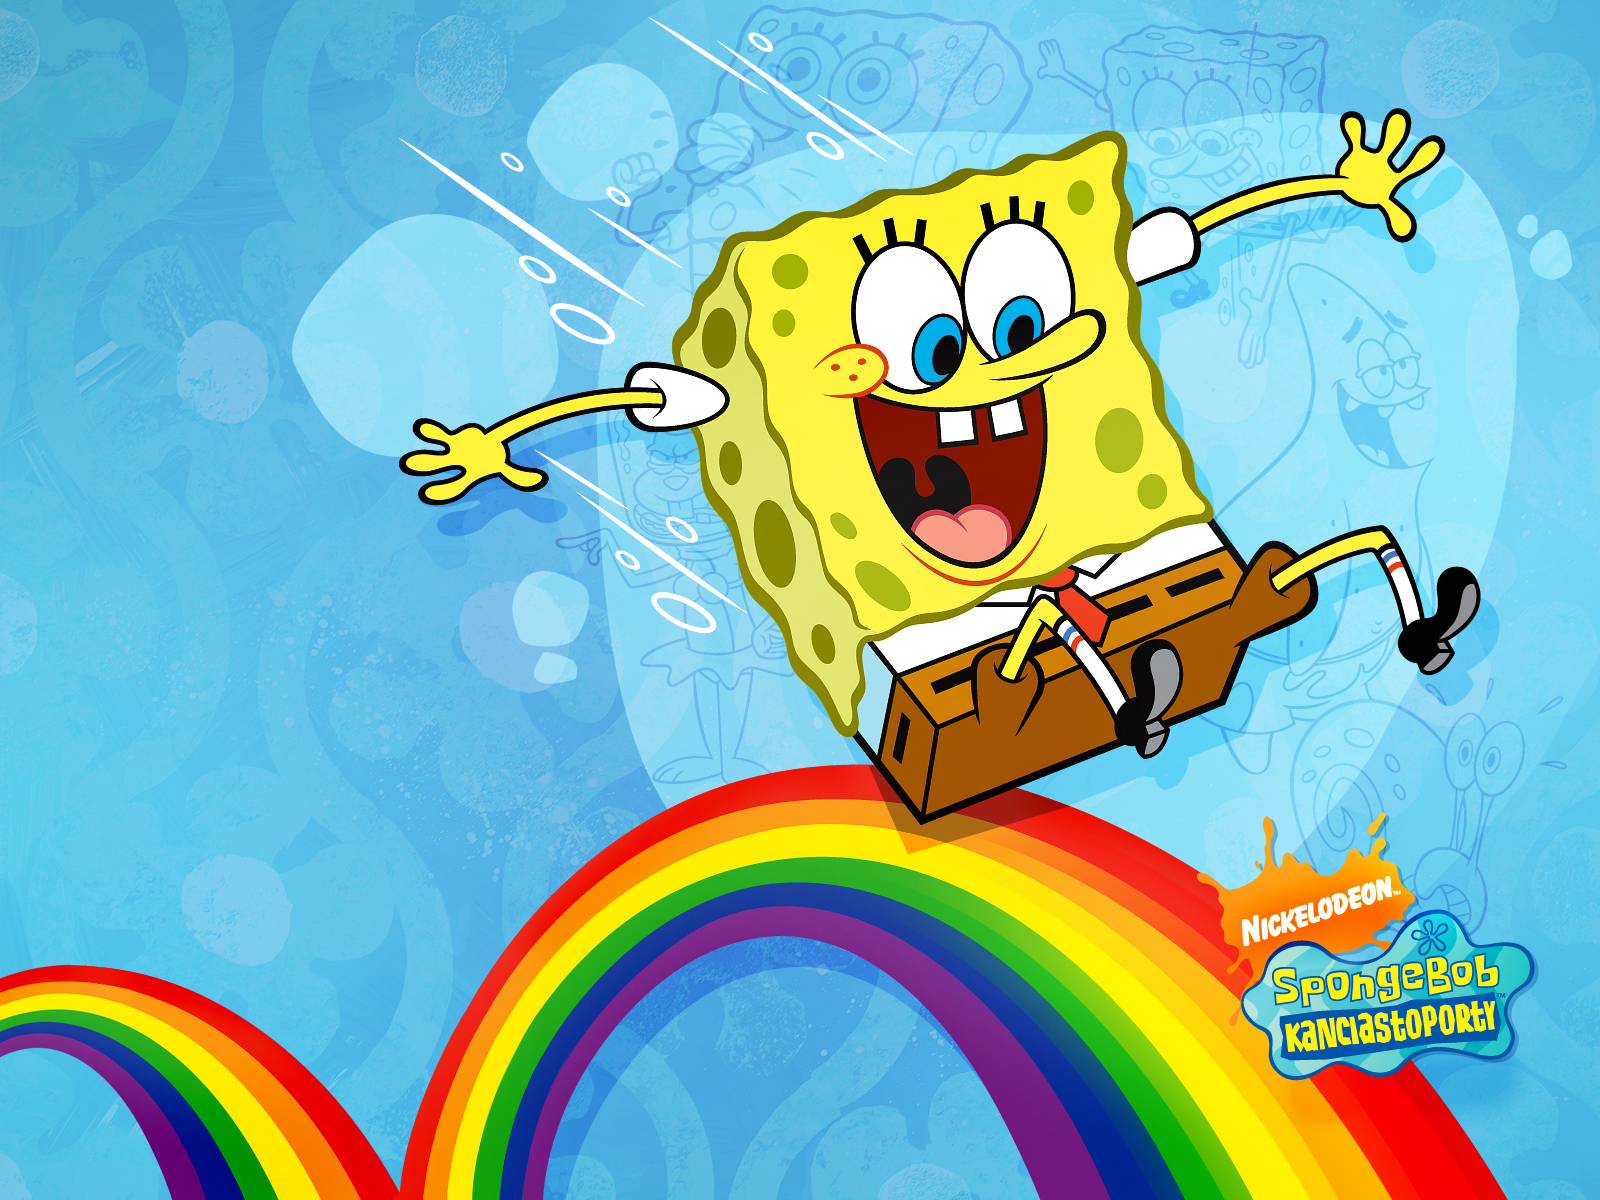 Rainbow Spongebob Wallpapers 9444 Wallpaper Walldiskpaper